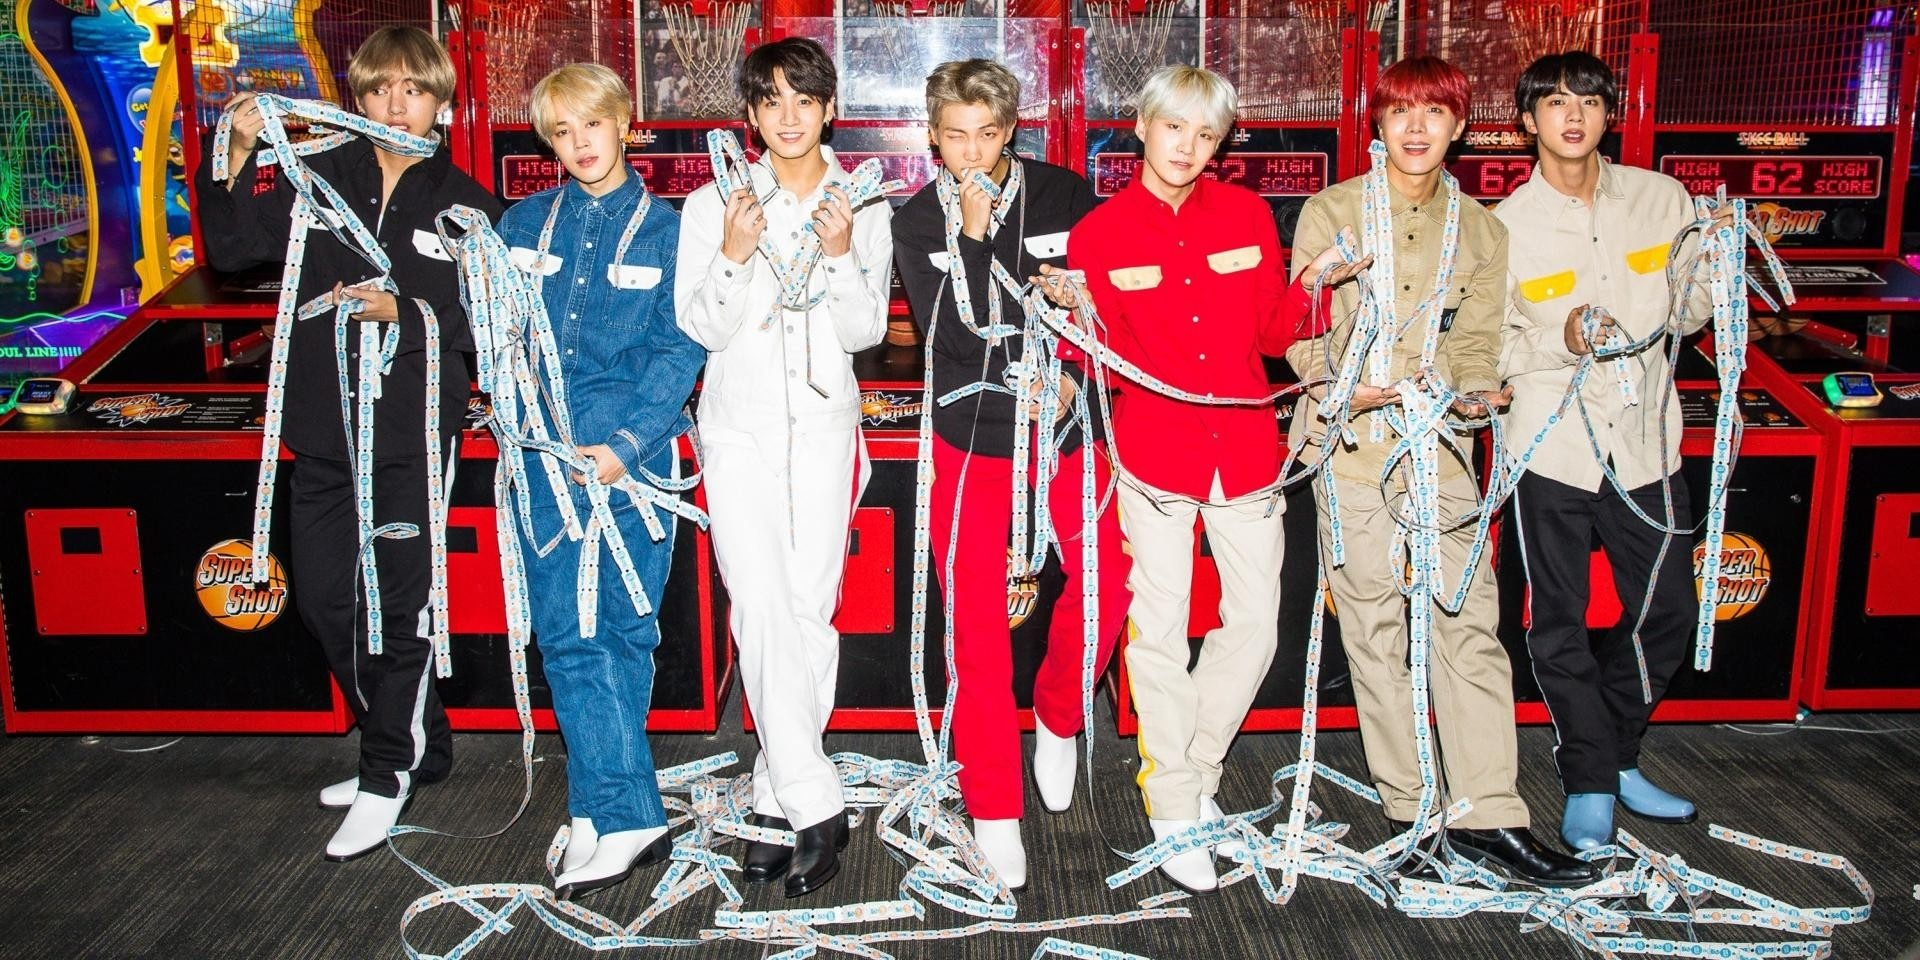 Scalpers reselling tickets to BTS' sold out Singapore show for exorbitant prices